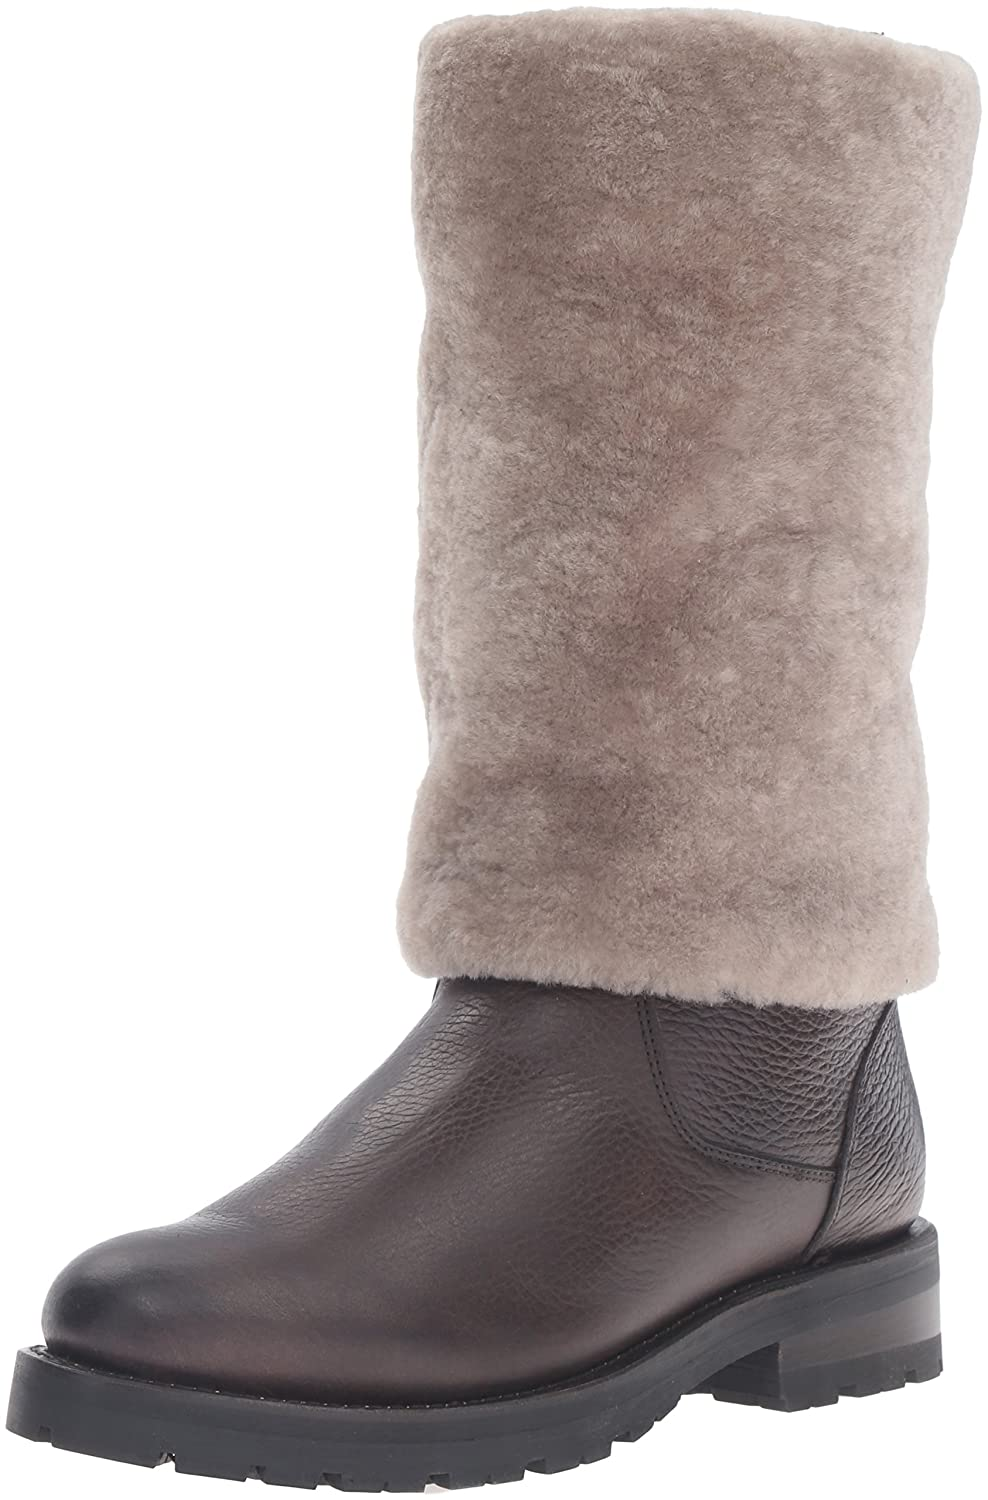 FRYE Women's Natalie Cuff Lug Winter Boot B01BM0N3FU 8 B(M) US|Dark Brown